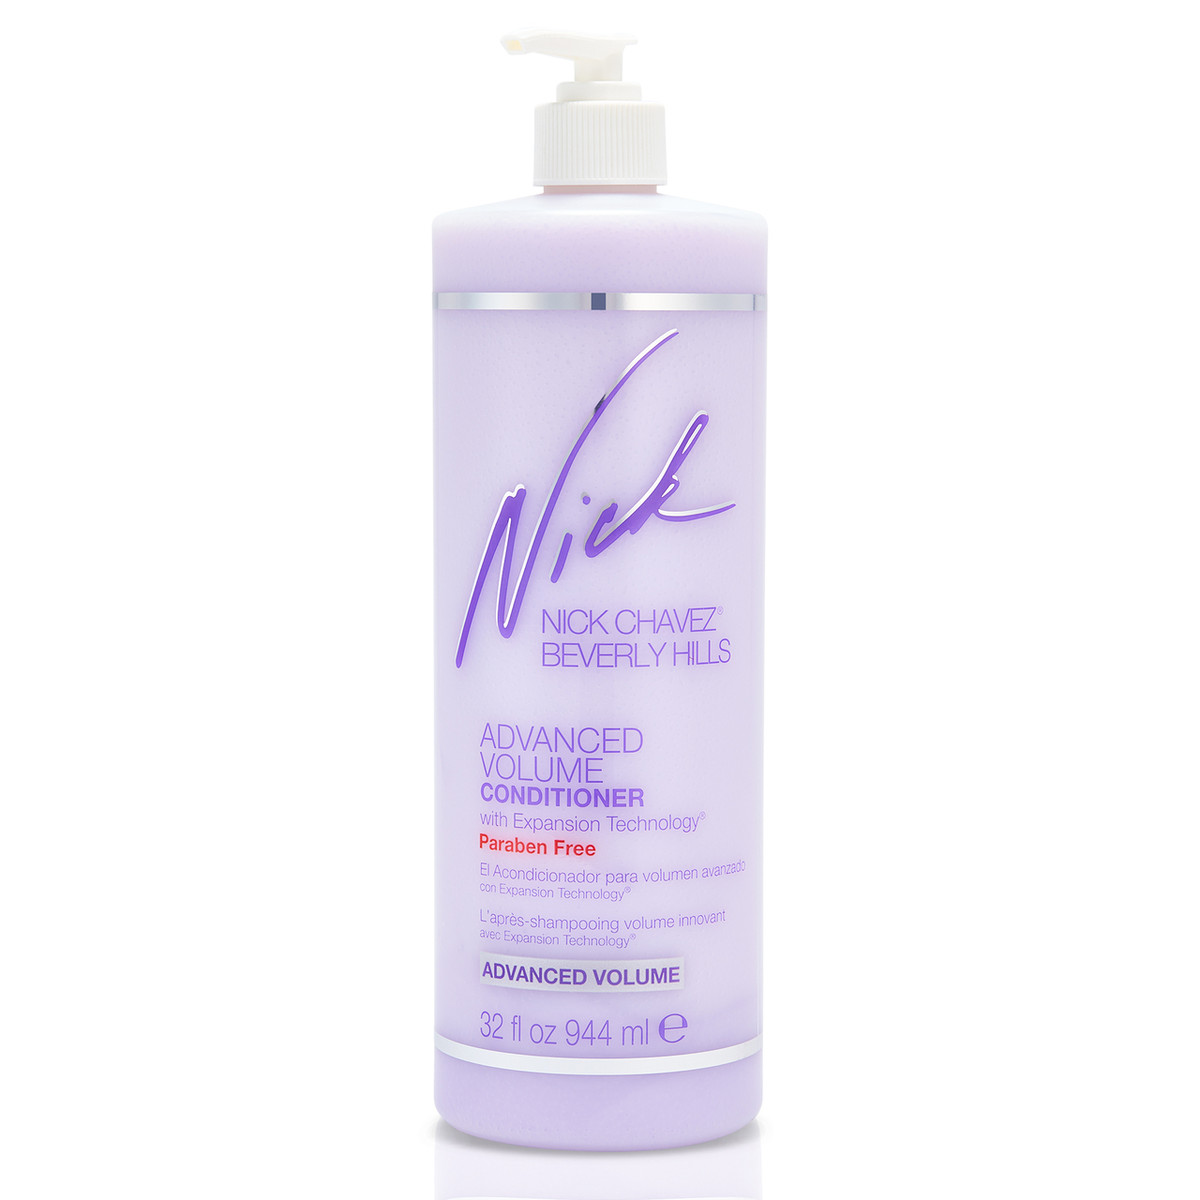 Advanced Volume Paraben and Sulfate Free Conditioner